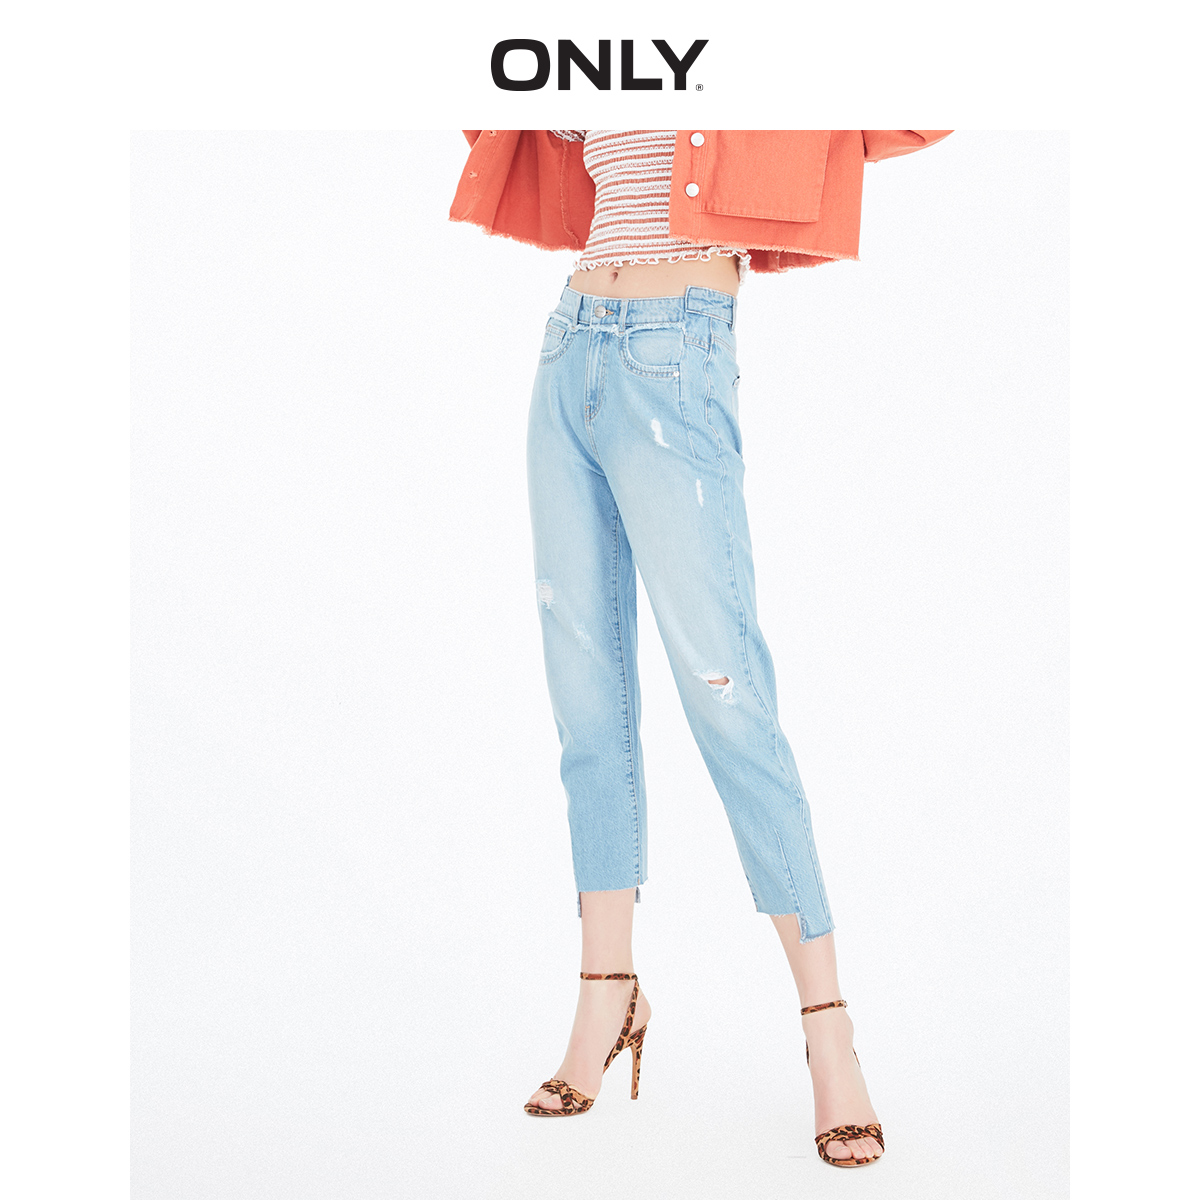 ONLY Women's  Loose Fit Irregular Raw-edge Cuffs Crop Jeans | 119249508